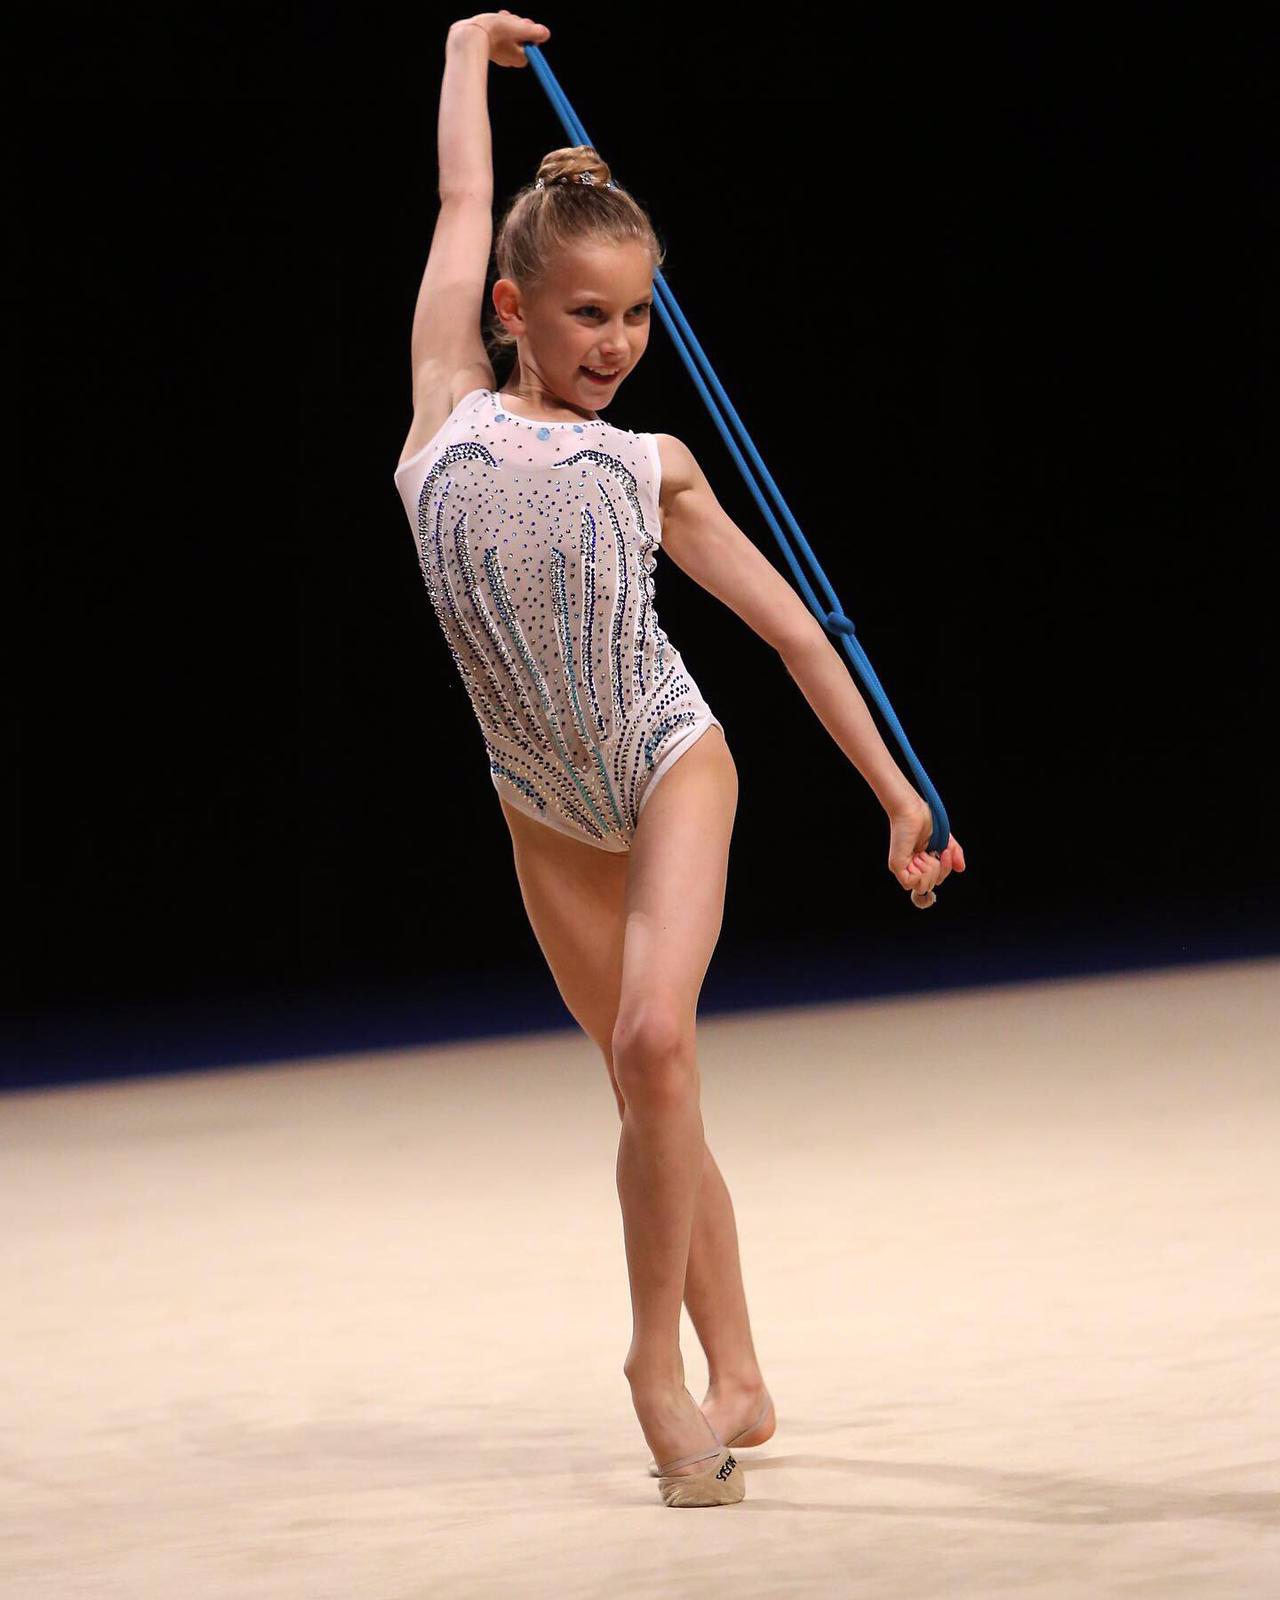 rhythmic gymnastics, rope